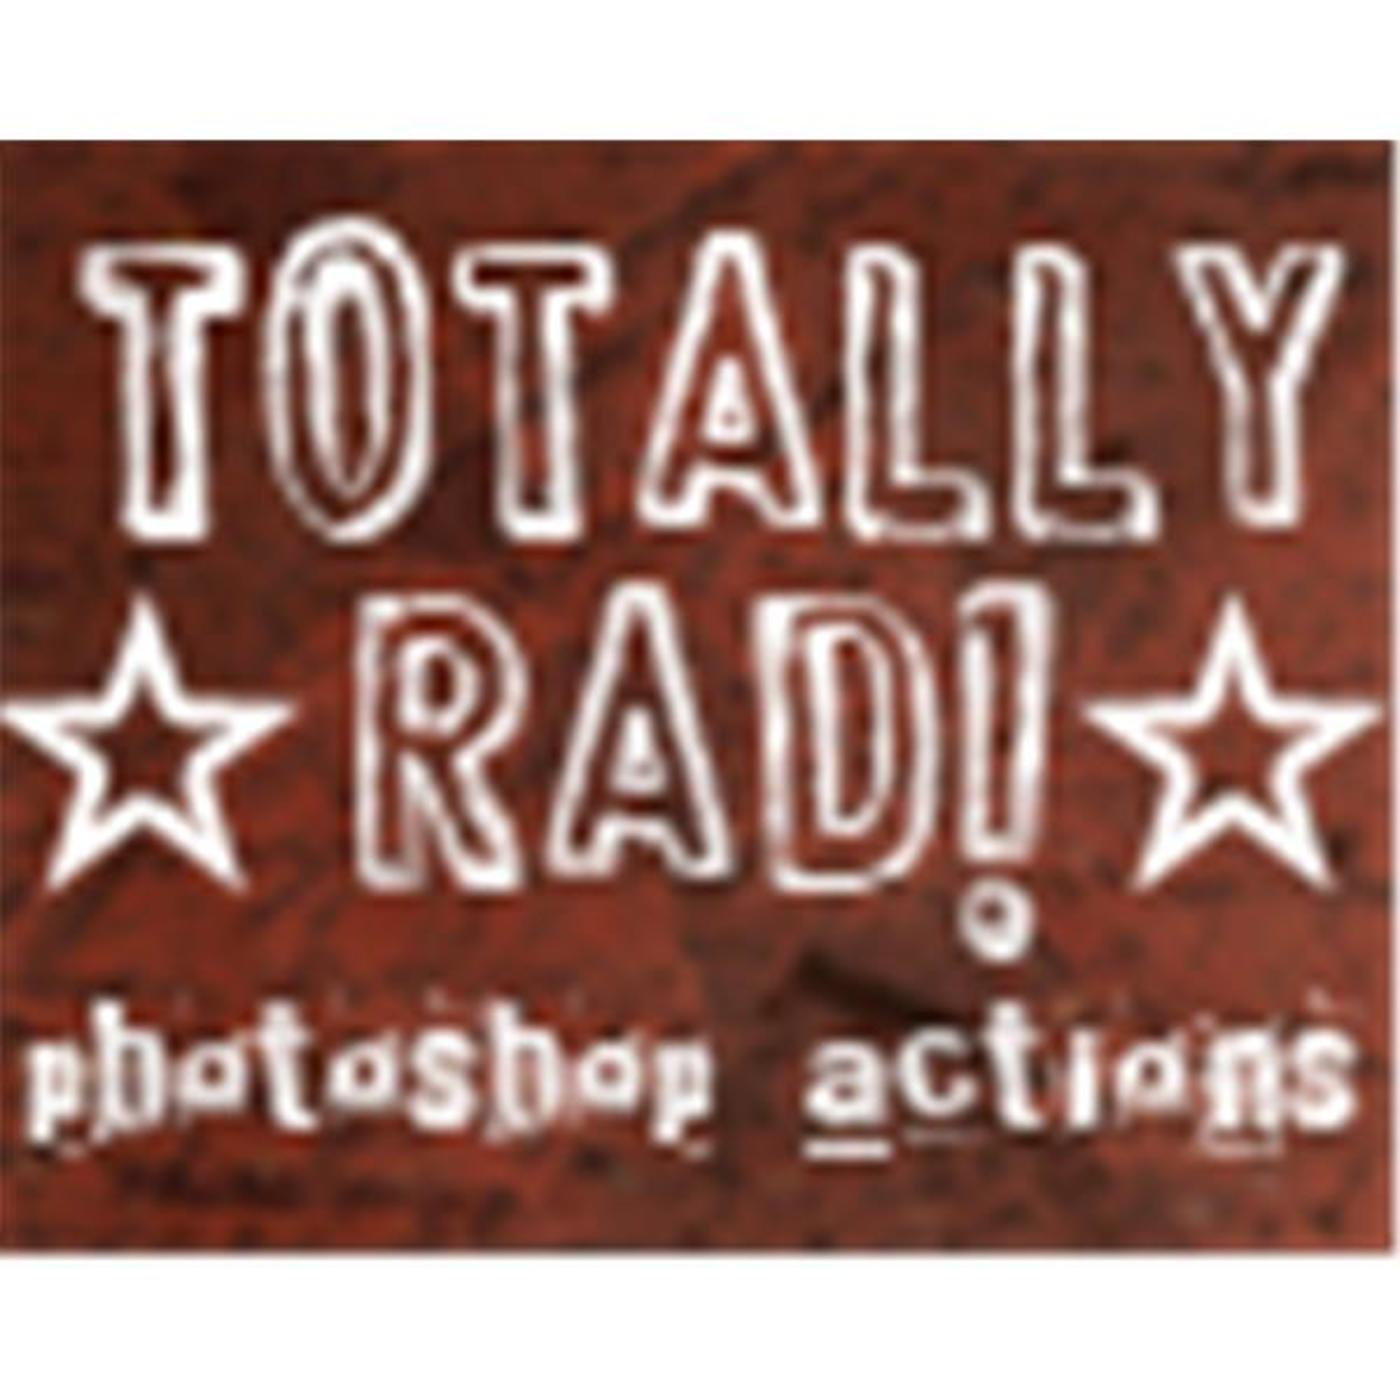 Get Totally Rad! audio